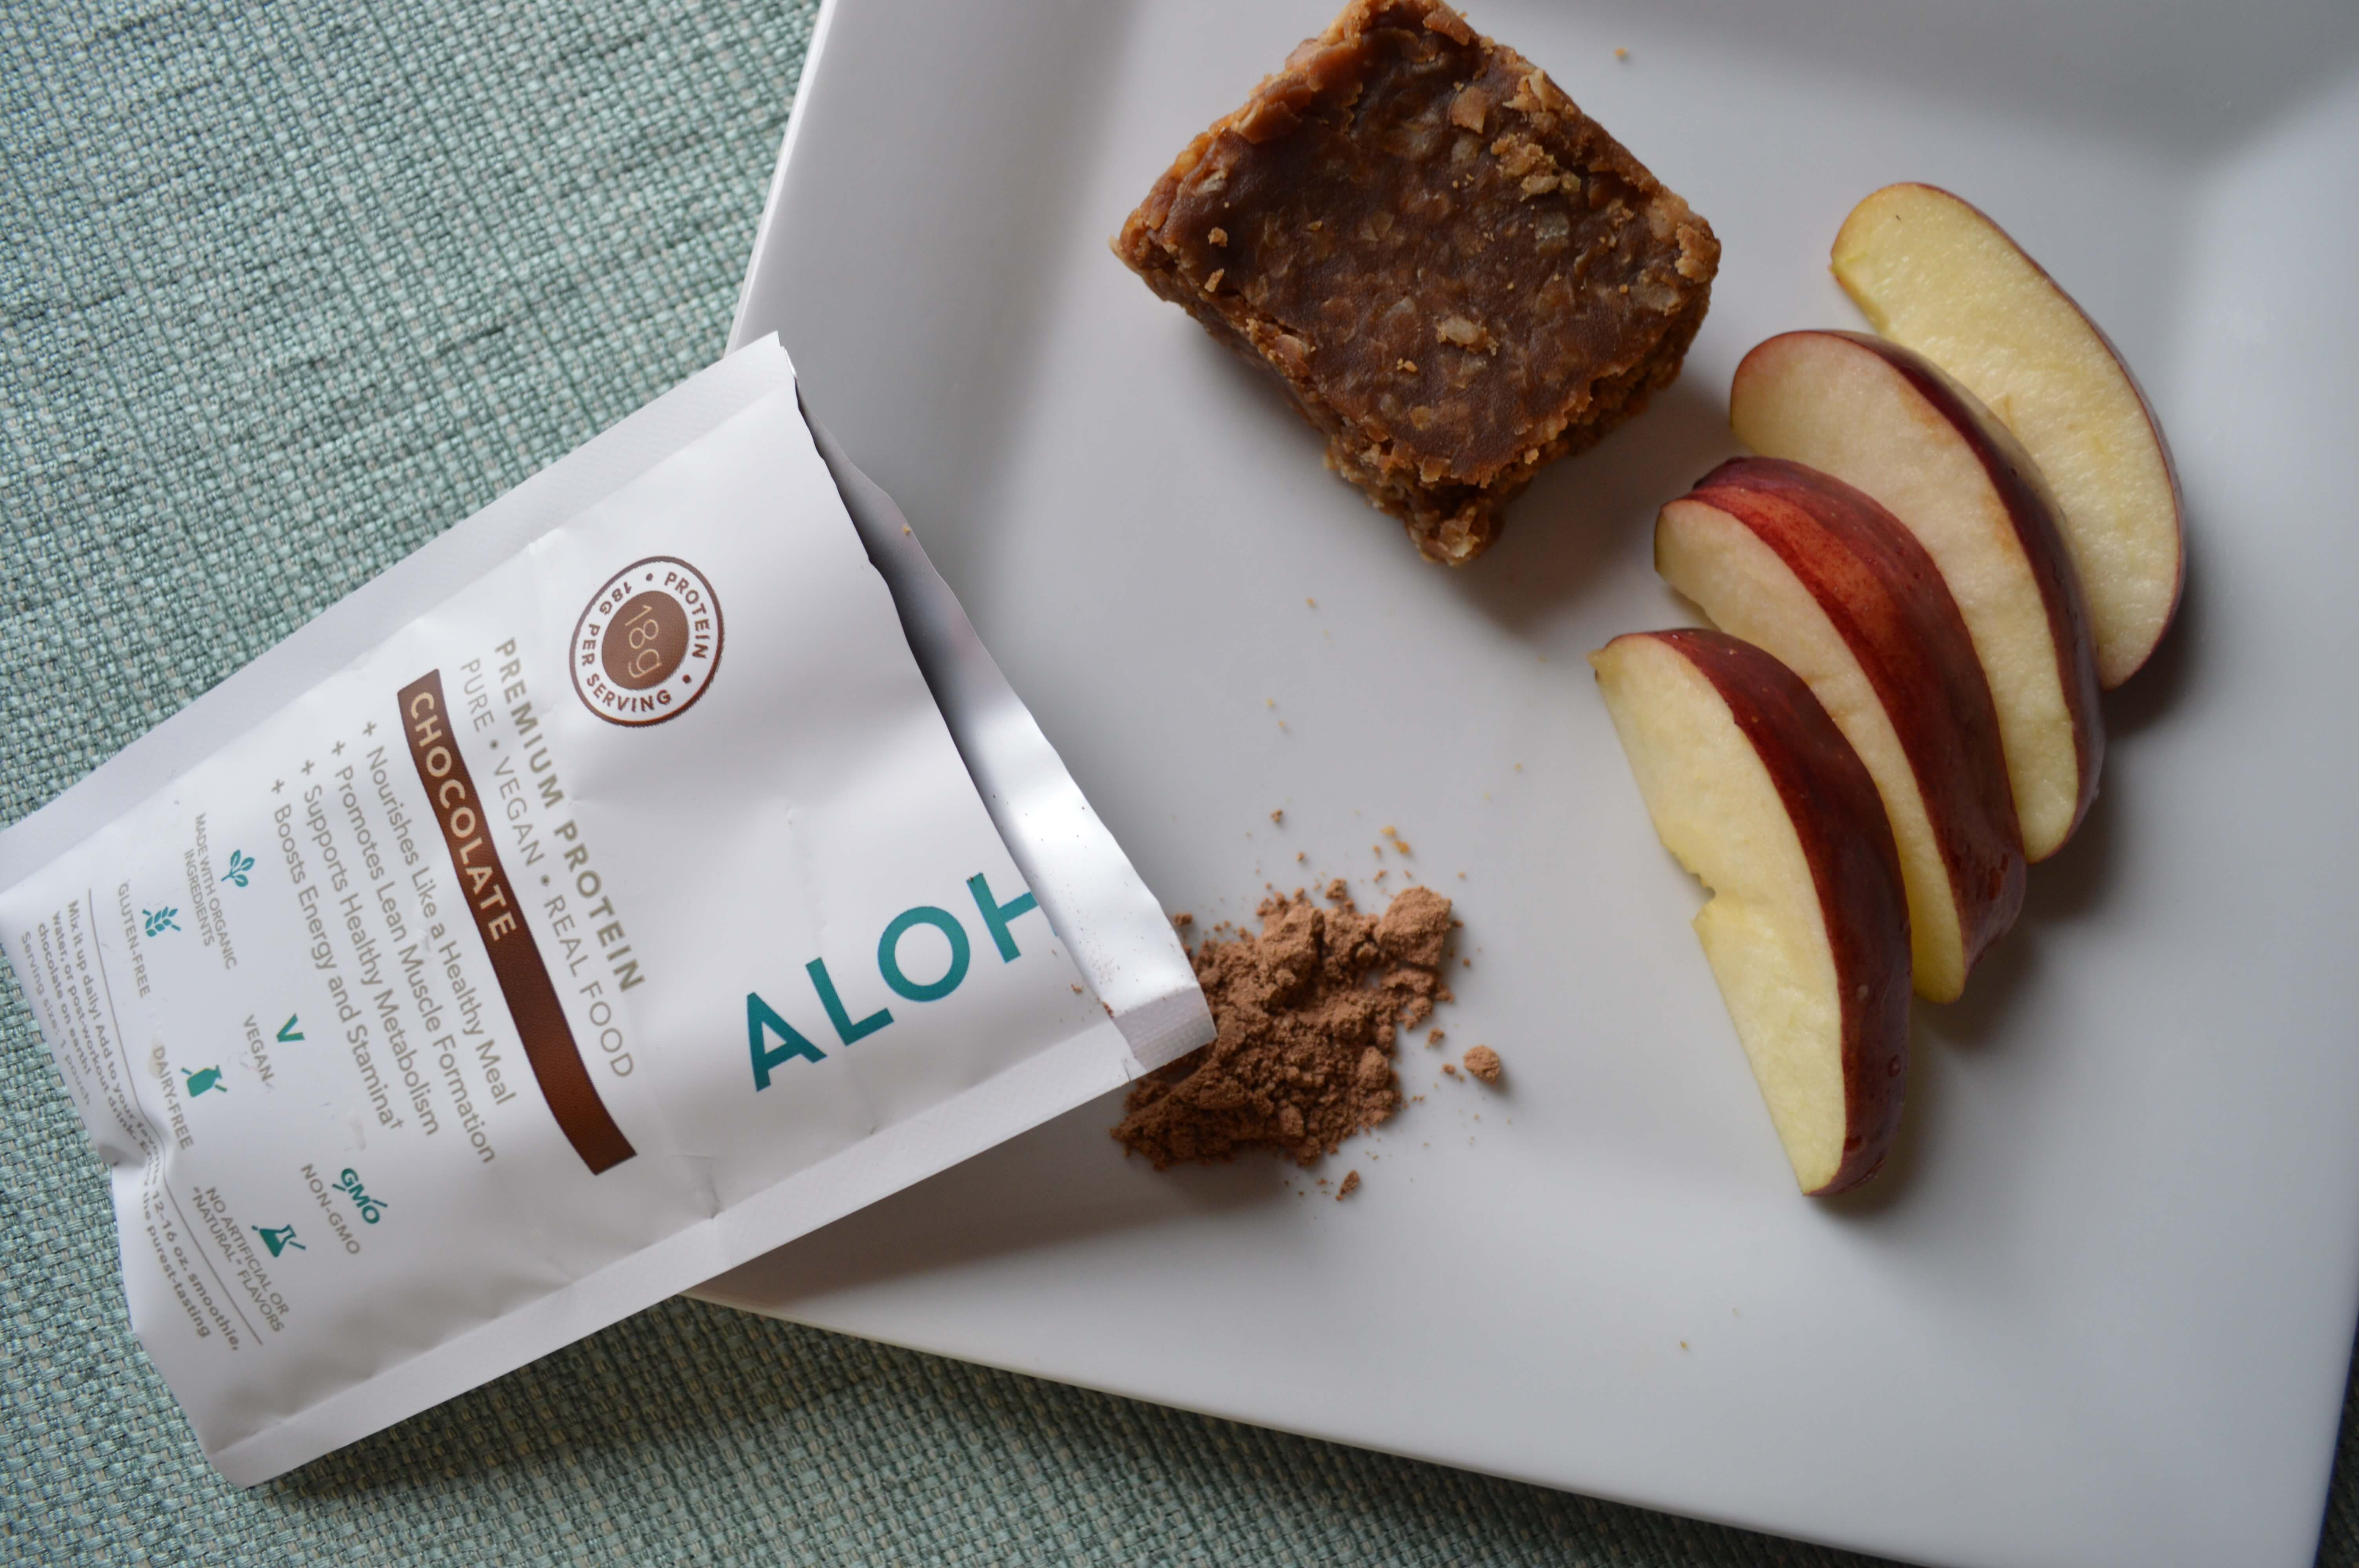 Most protein powders contain debatable ingredients but not ALOHA protein powders! Learn more about ALOHA & find a recipe for vanilla protein powder bread.